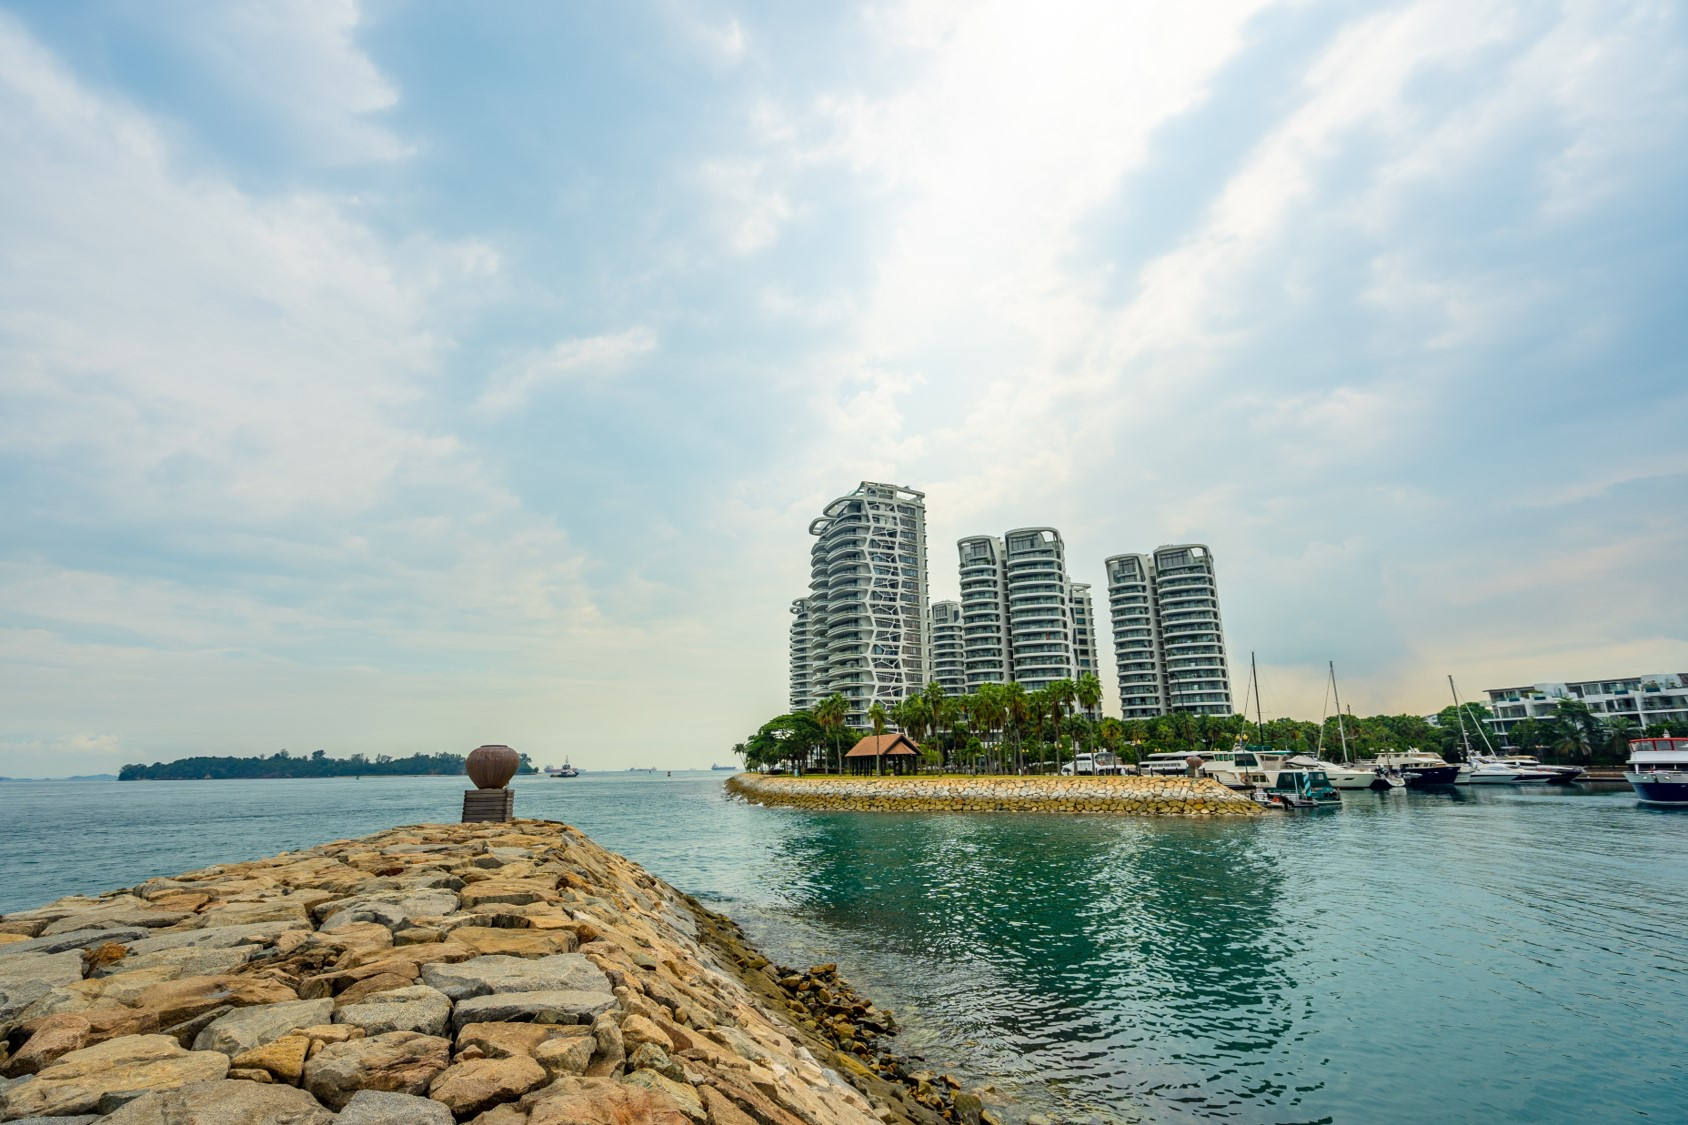 Sentosa Cove - Get a glimpse of the first and only oceanfront residence in Singapore, a world-class luxurious residential enclave area at the Eastern tip of the island.